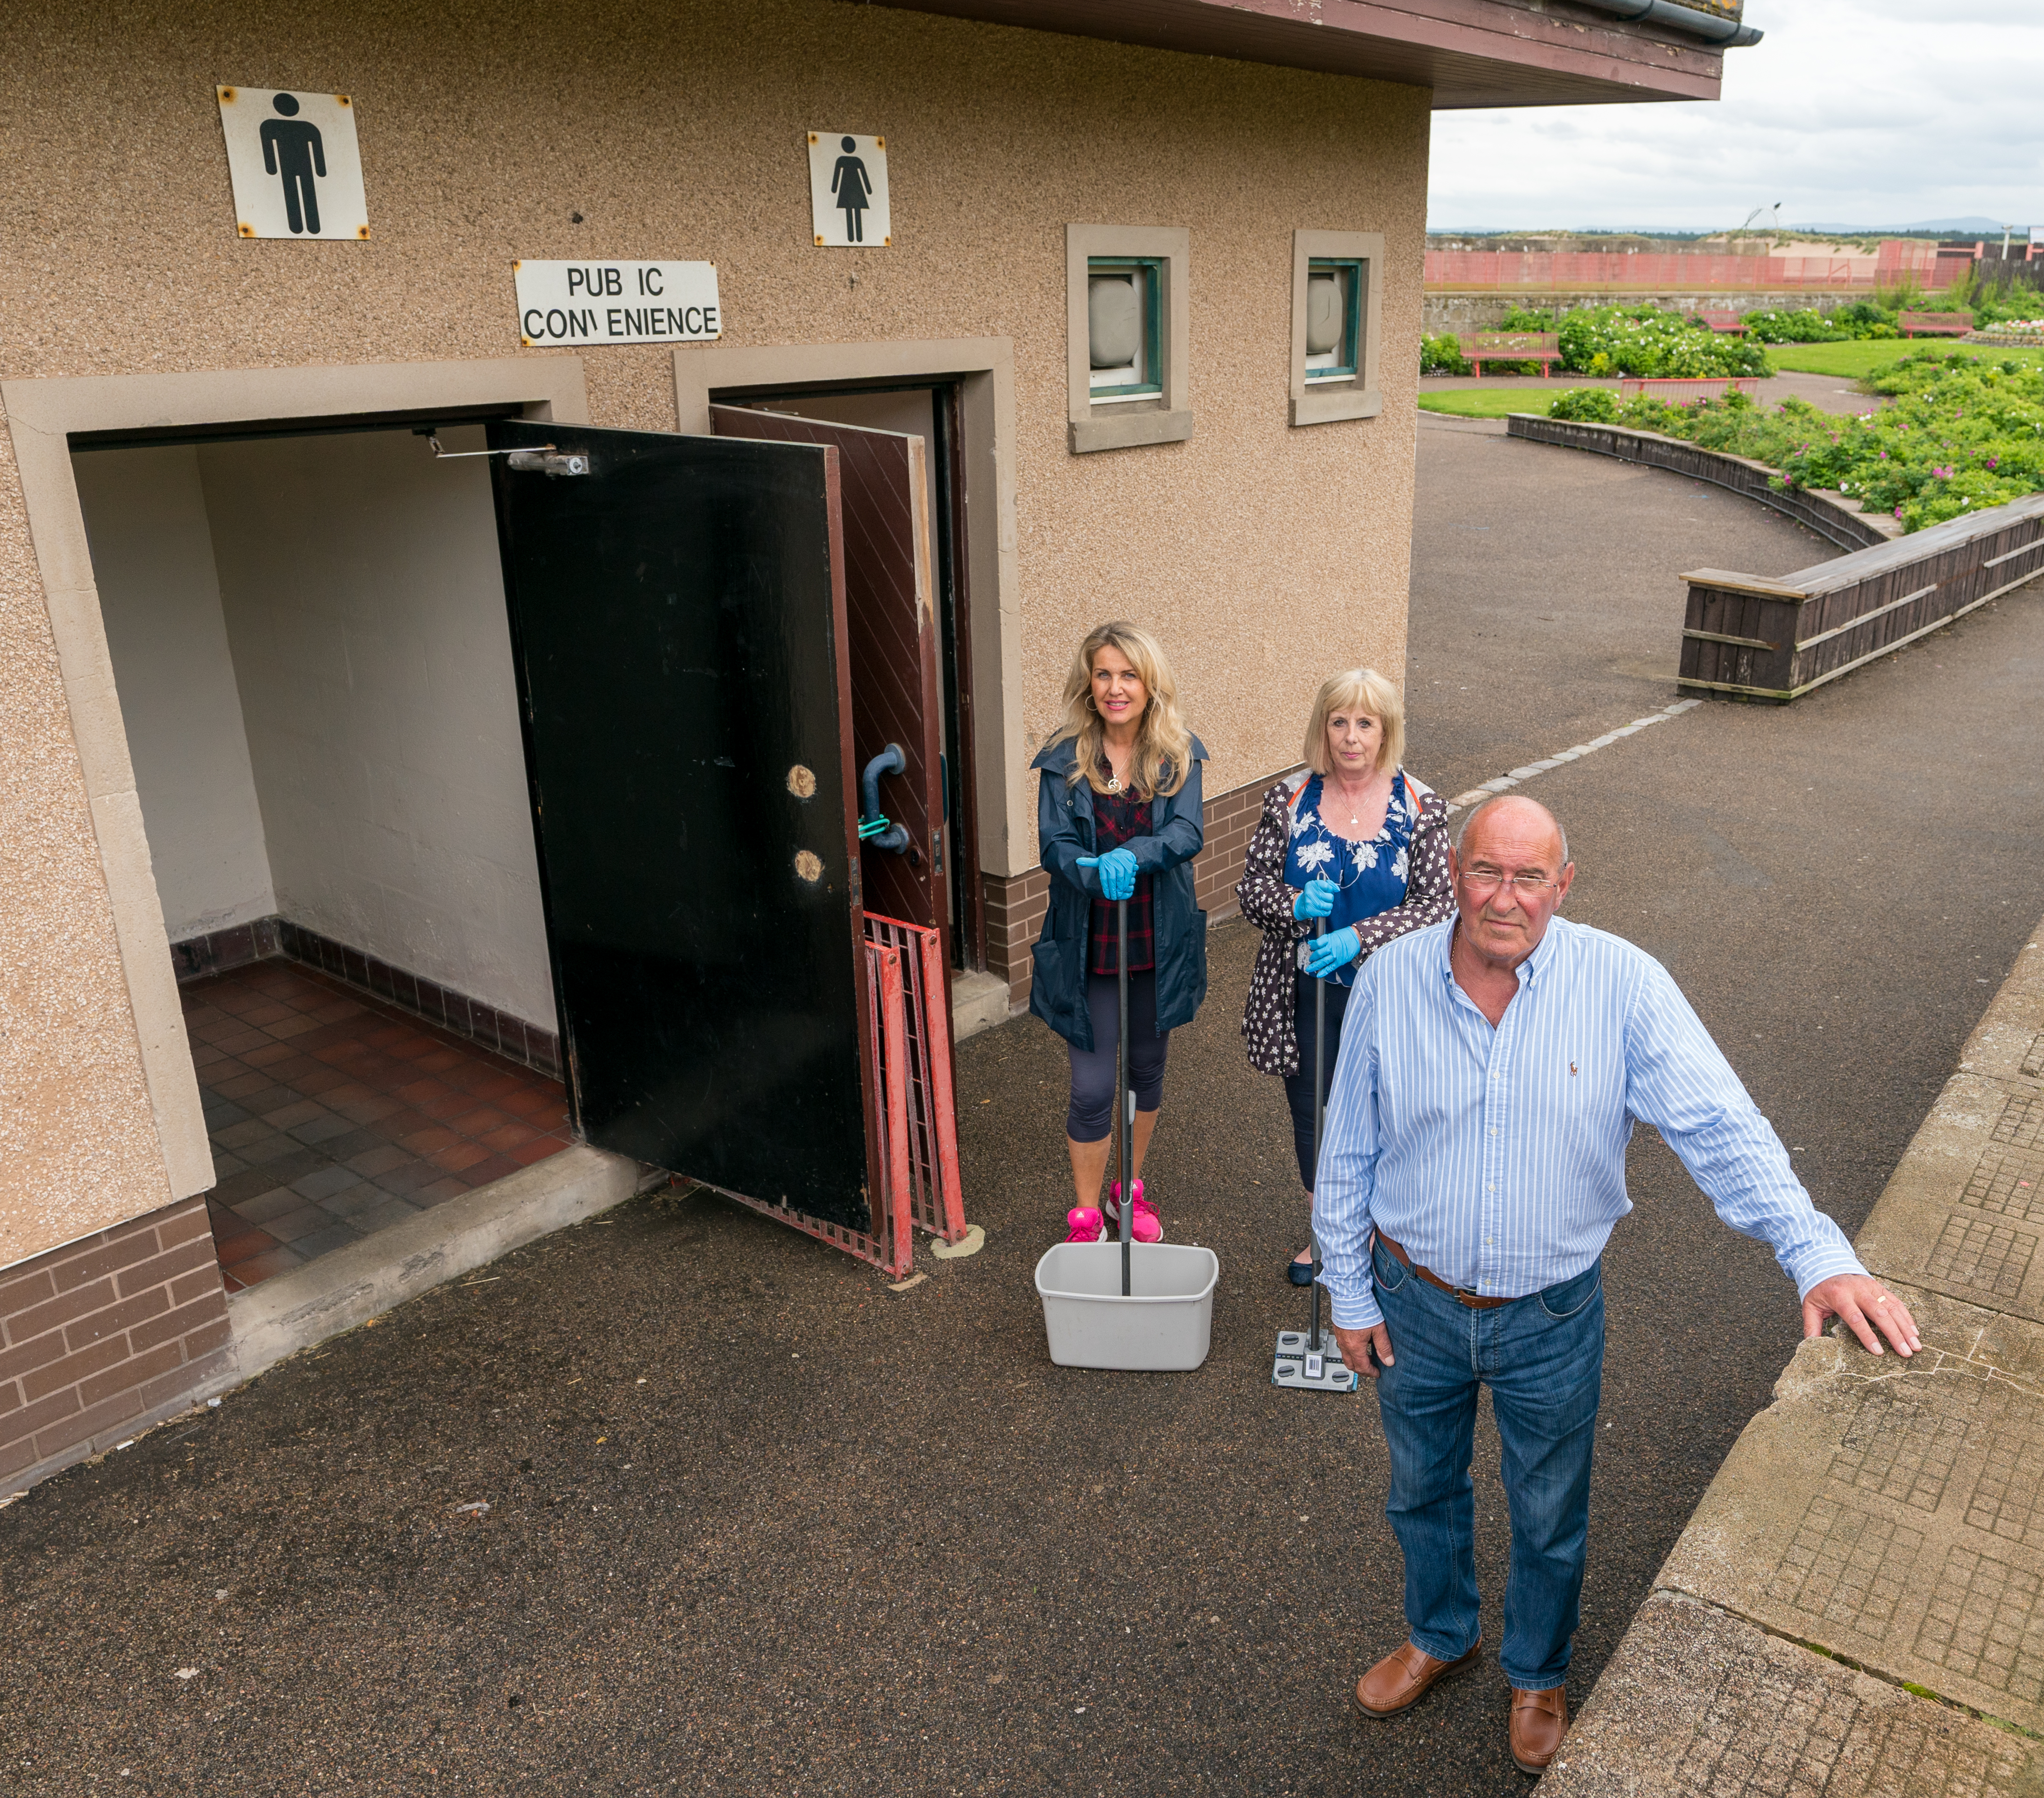 Chairman Mike Mulholland, Vice Chair Carolle Ralph and Fiona Campbell at the Public Toilets which have been left in disgraceful states.